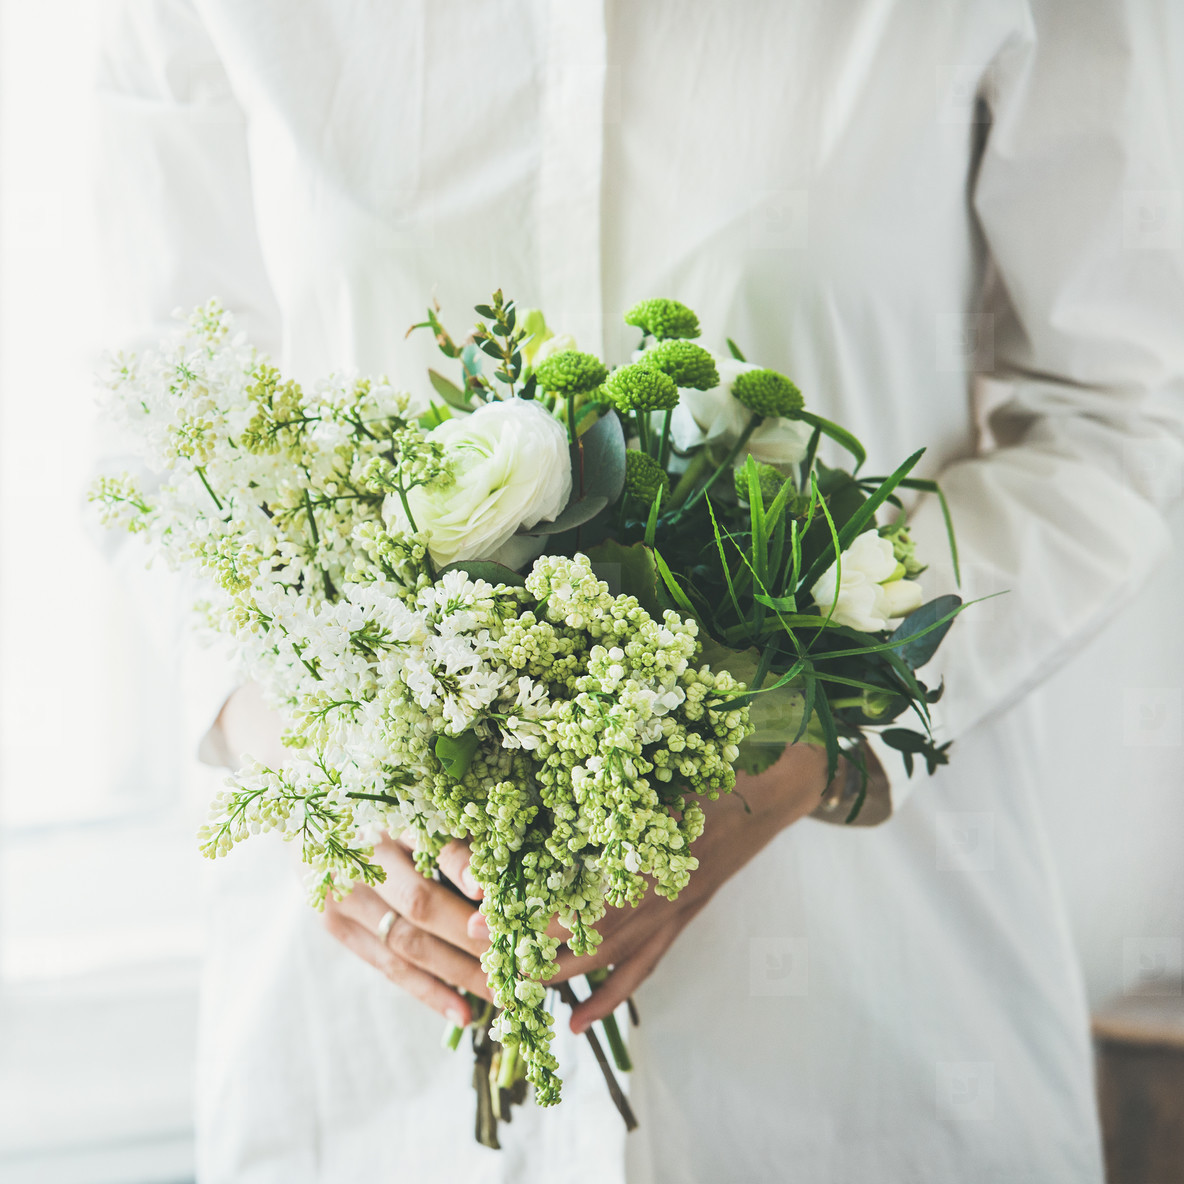 Young woman wearing white clothes holding flowers bouquet  square crop